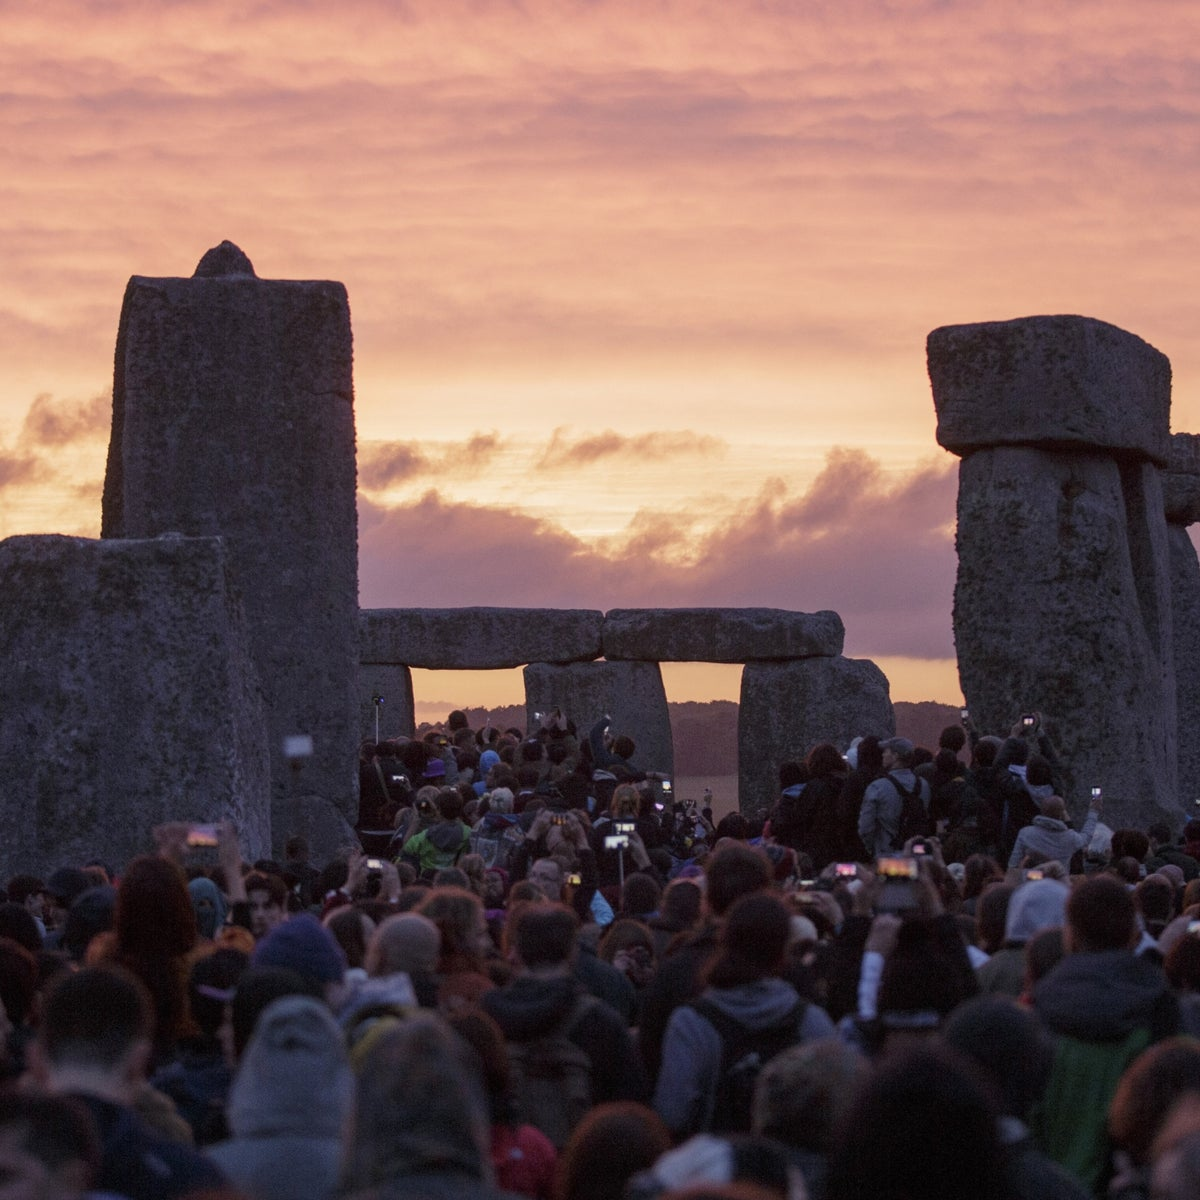 Revelers gather at Stonehenge to celebrate the Summer Solstice in 2015 - sans swines.